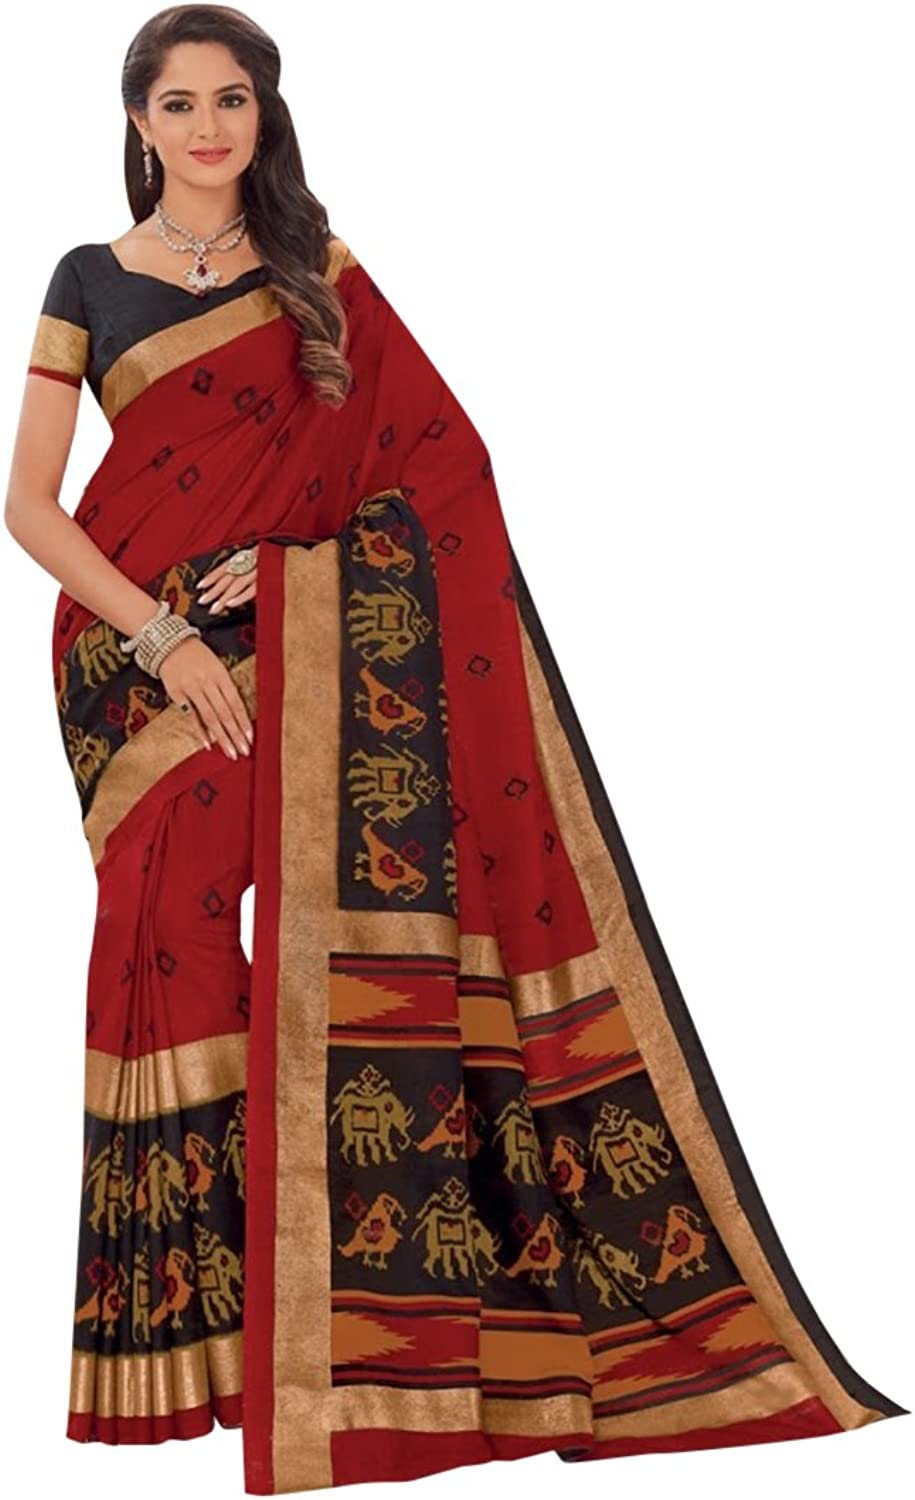 Bollywood Bridal Saree Sari for Women Collection Blouse Wedding Party Wear Ceremony 830